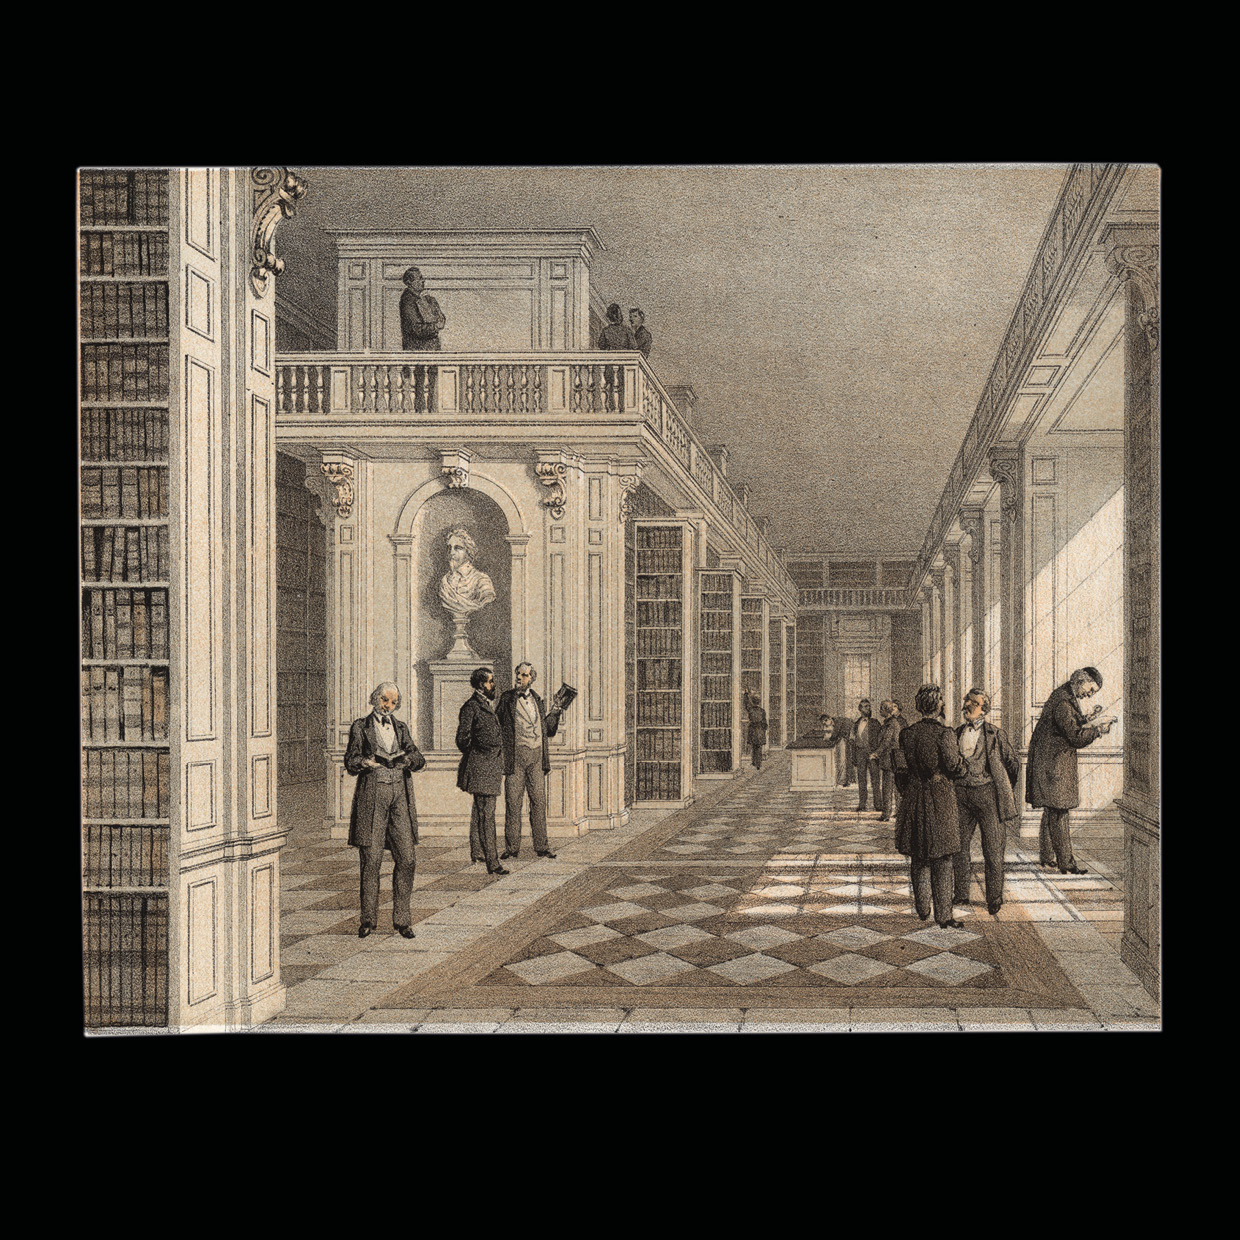 Interior of the book hall with men talking or reading books